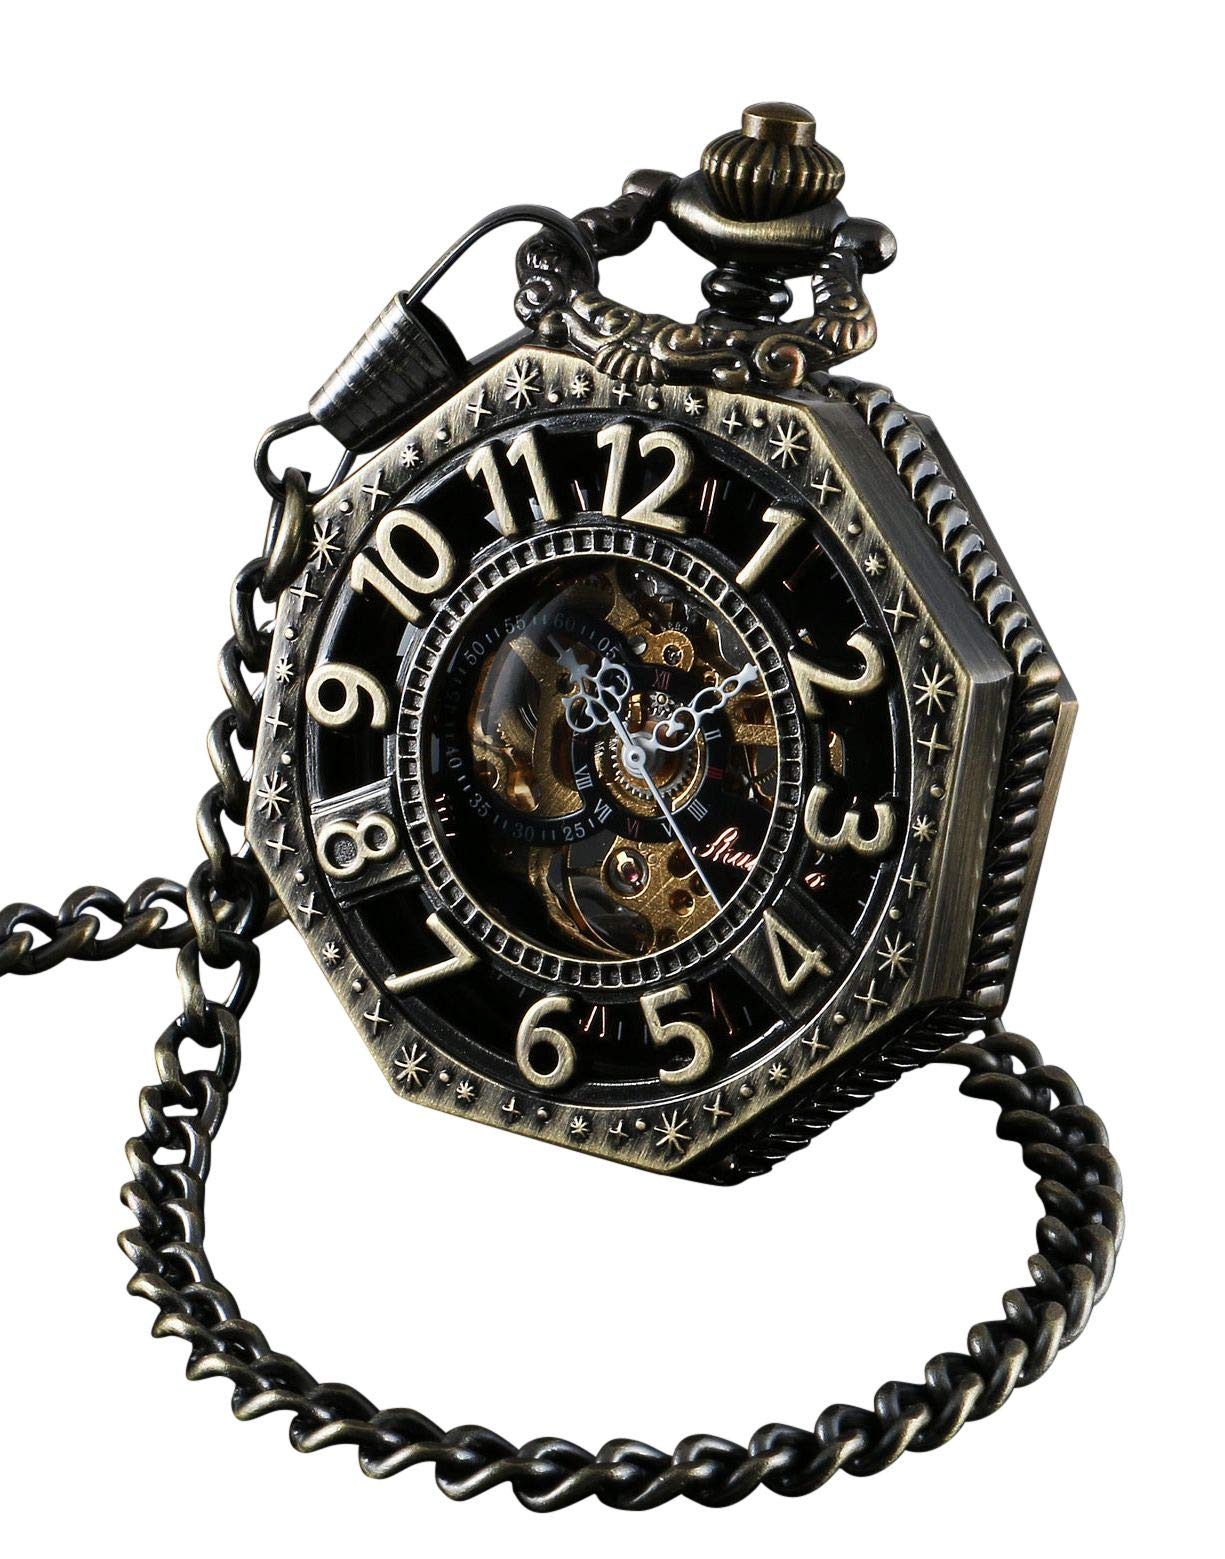 ShoppeWatch Skeleton Pocket Watch with Chain Bronze Octagon Case Steampunk Costume Railroad Style Mechanical Movement… 3